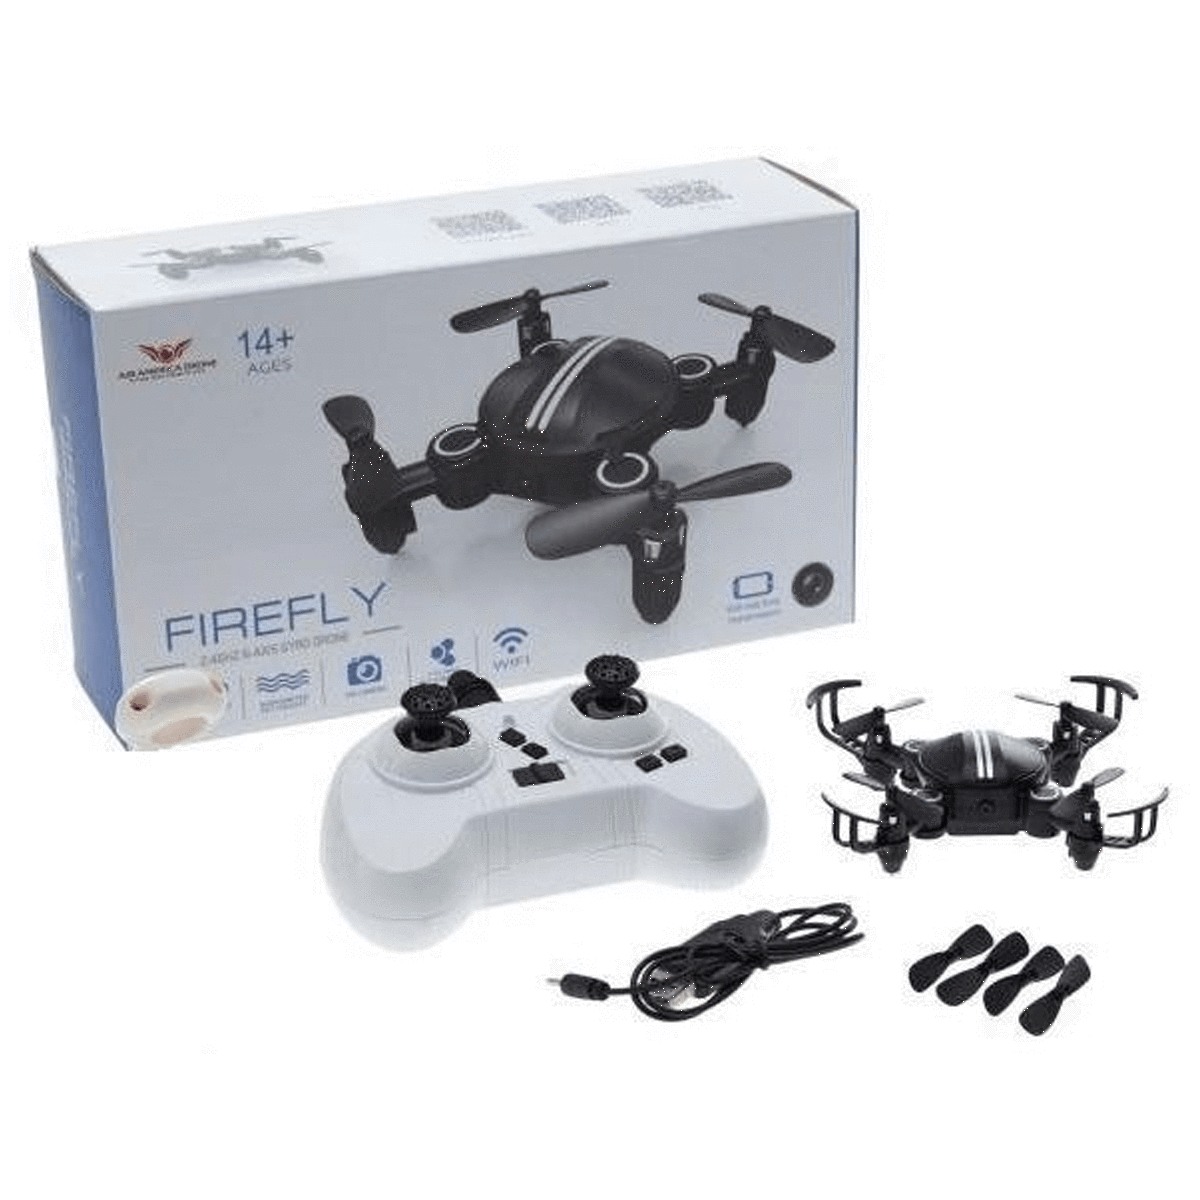 Firefly Mini Drone Black With Box